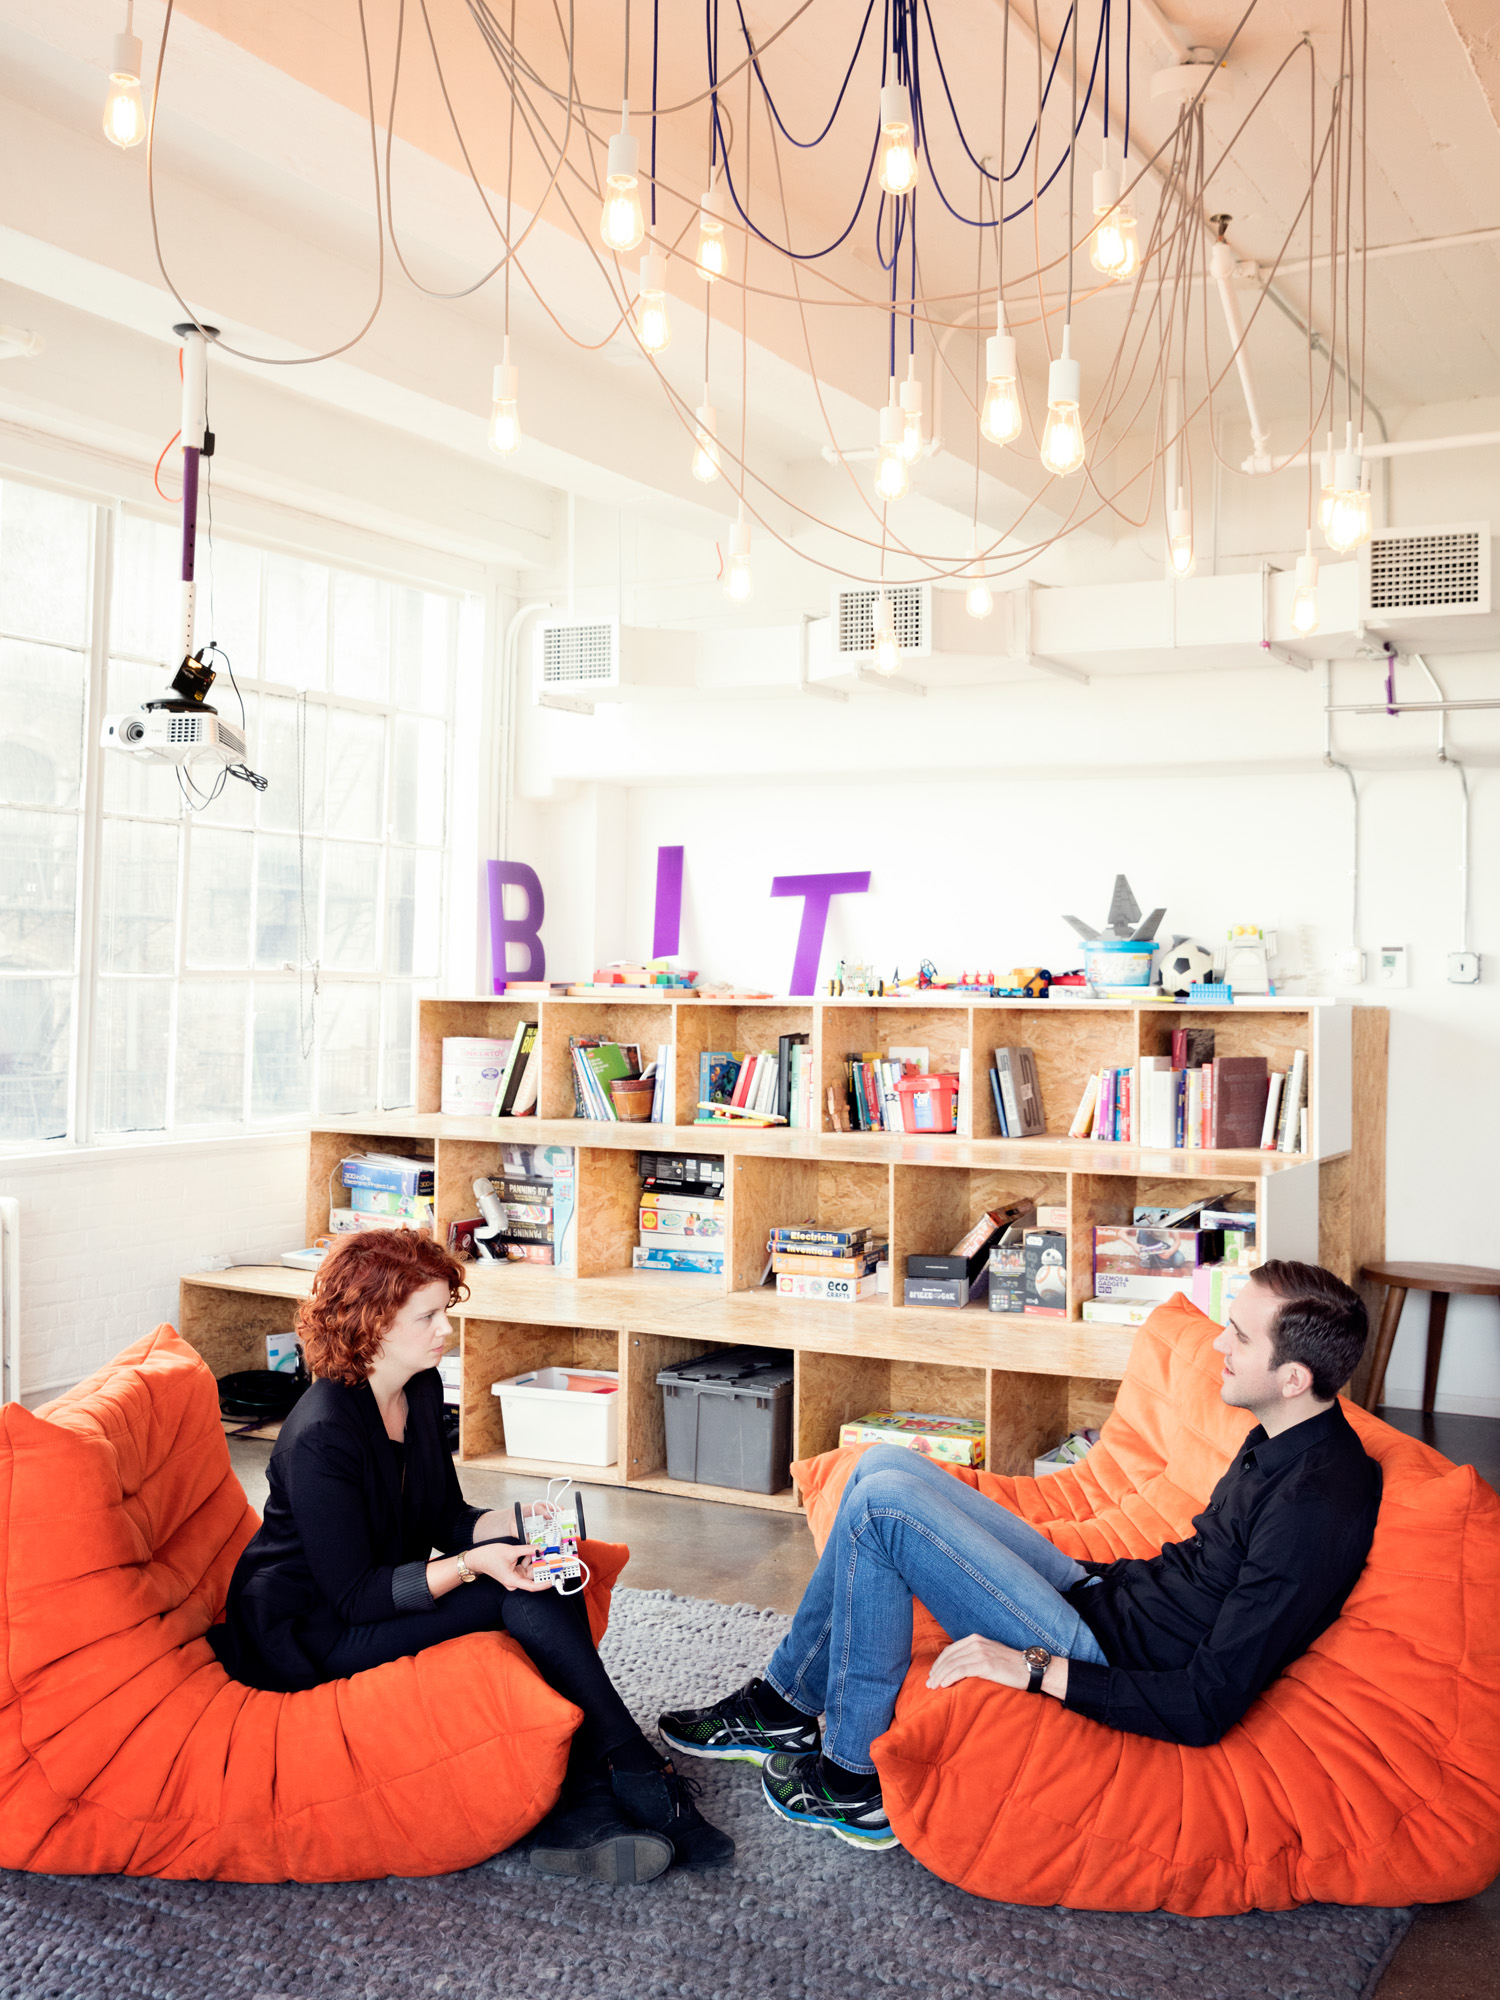 cc2016011 - LittleBits CEO Ayah Bedir photographed for Wired UK